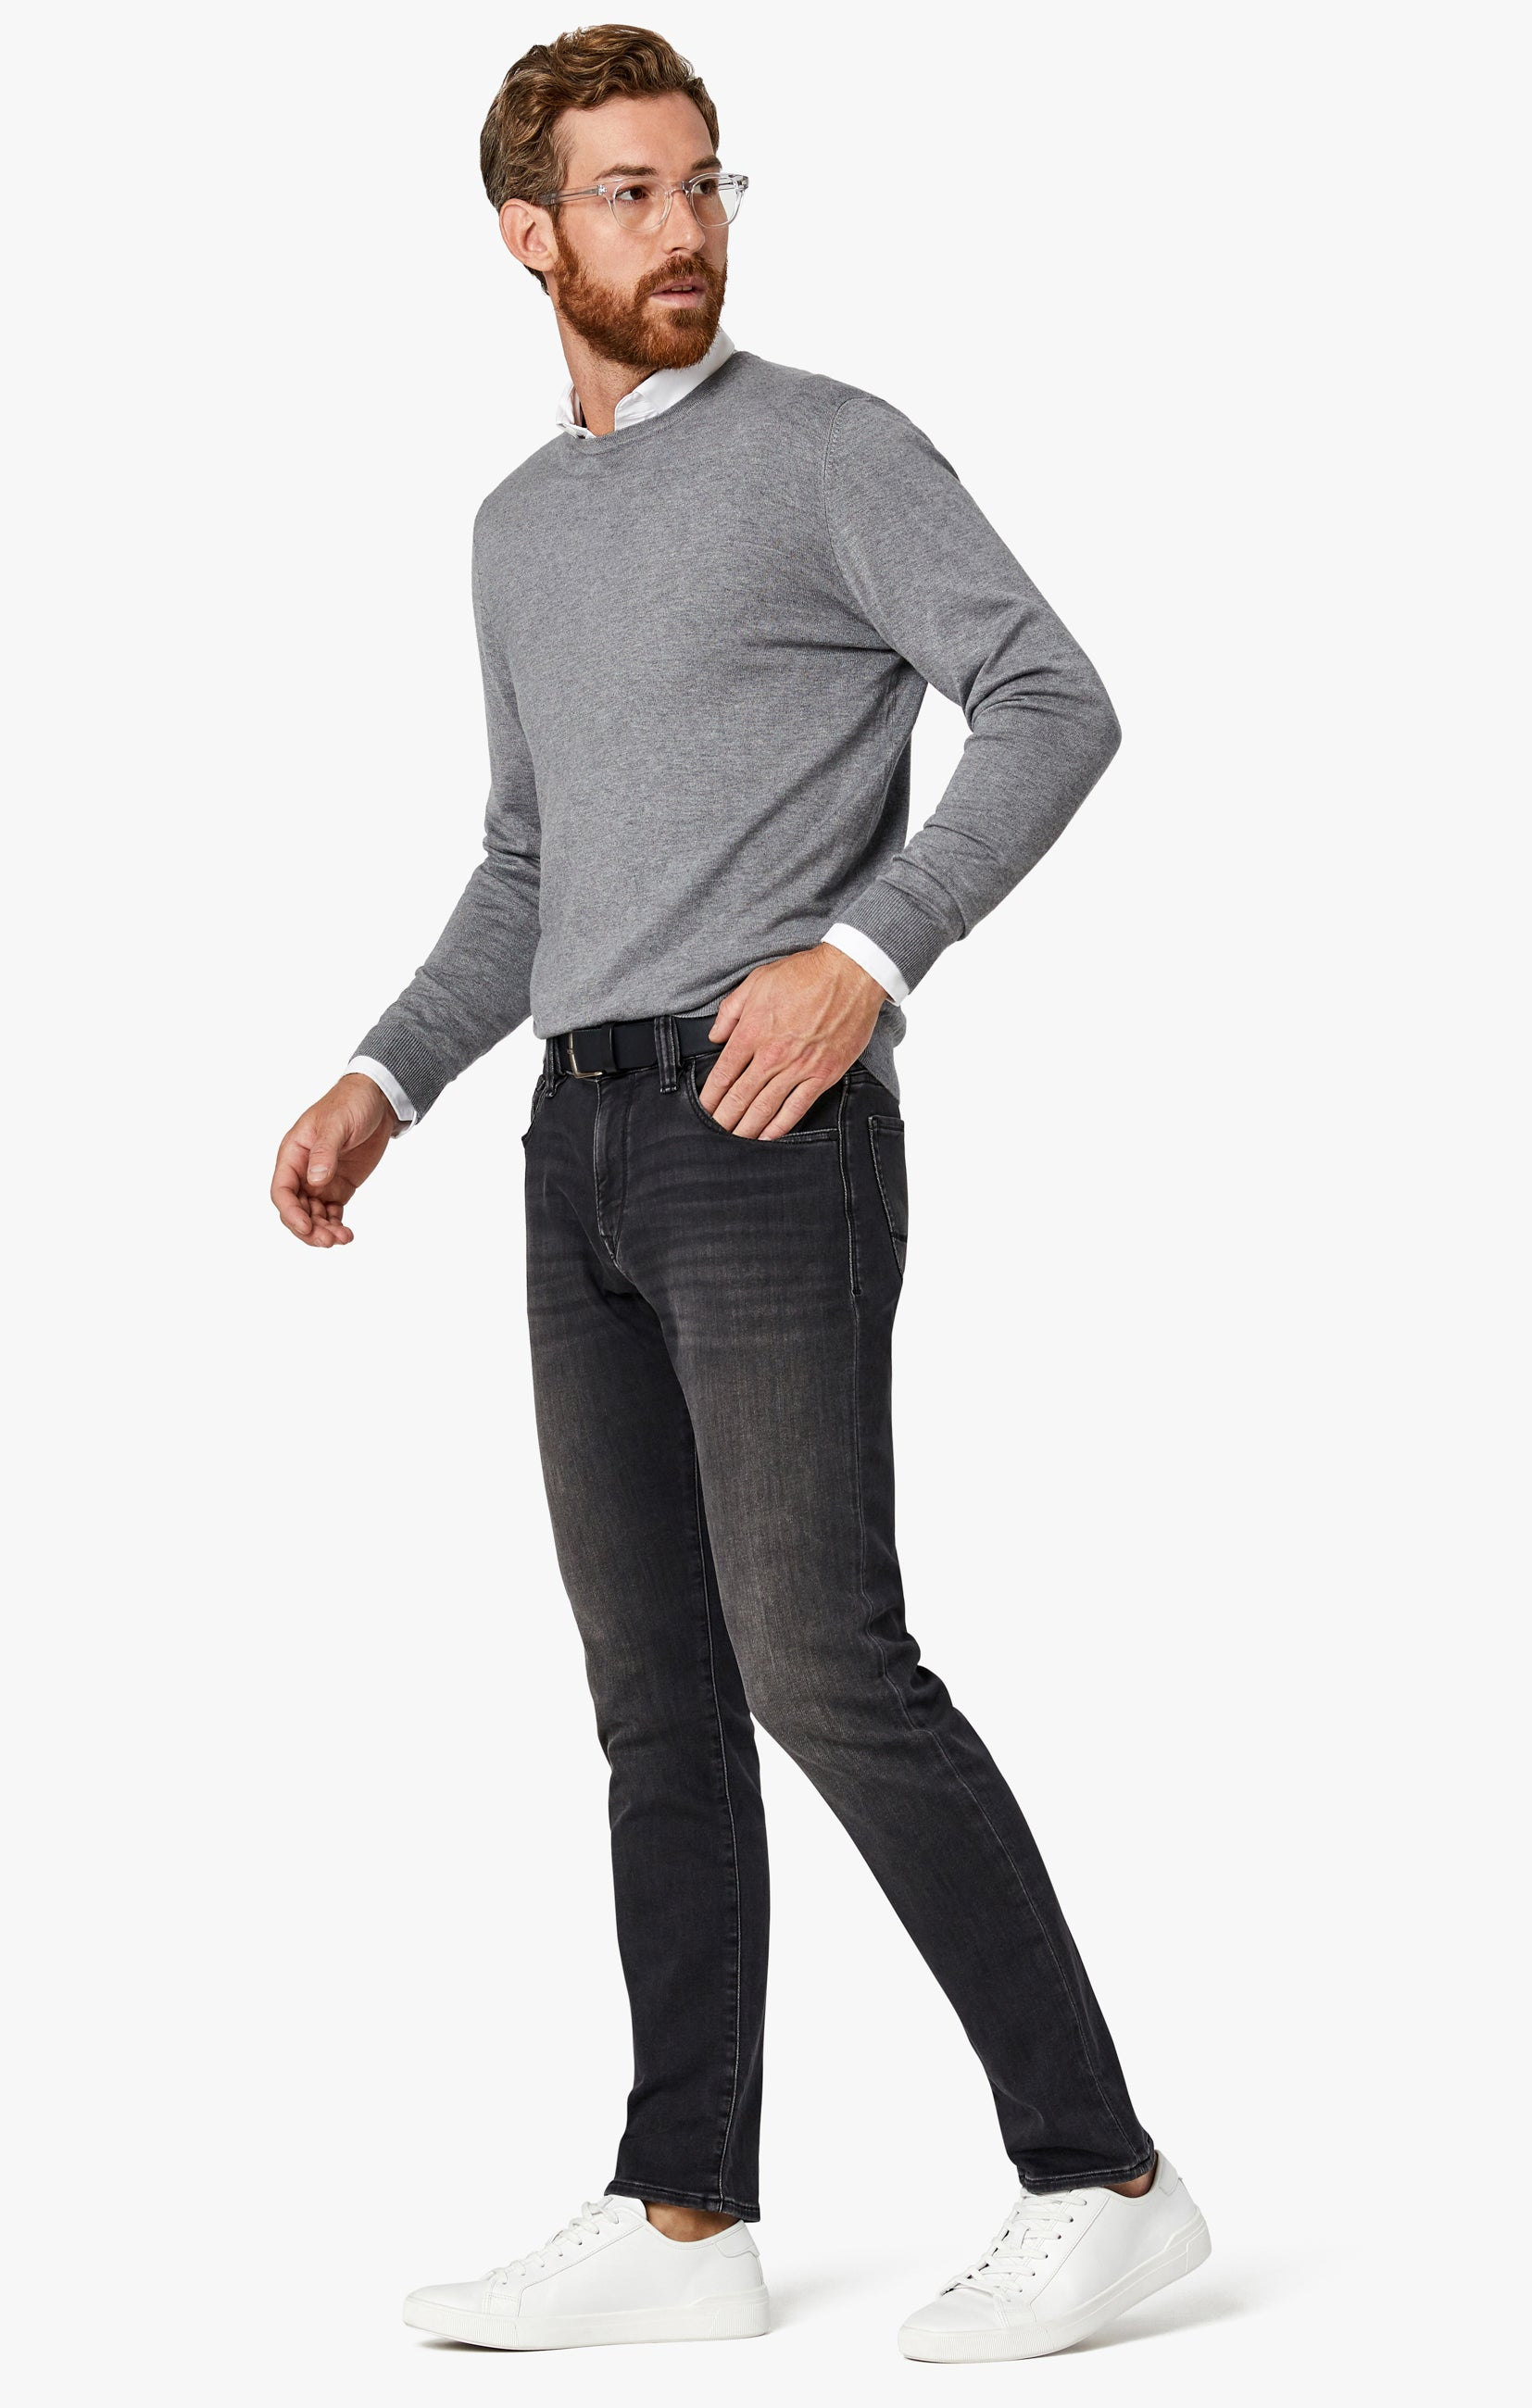 Courage Straight Leg Jeans in Mid Smoke Smart Casual Image 1